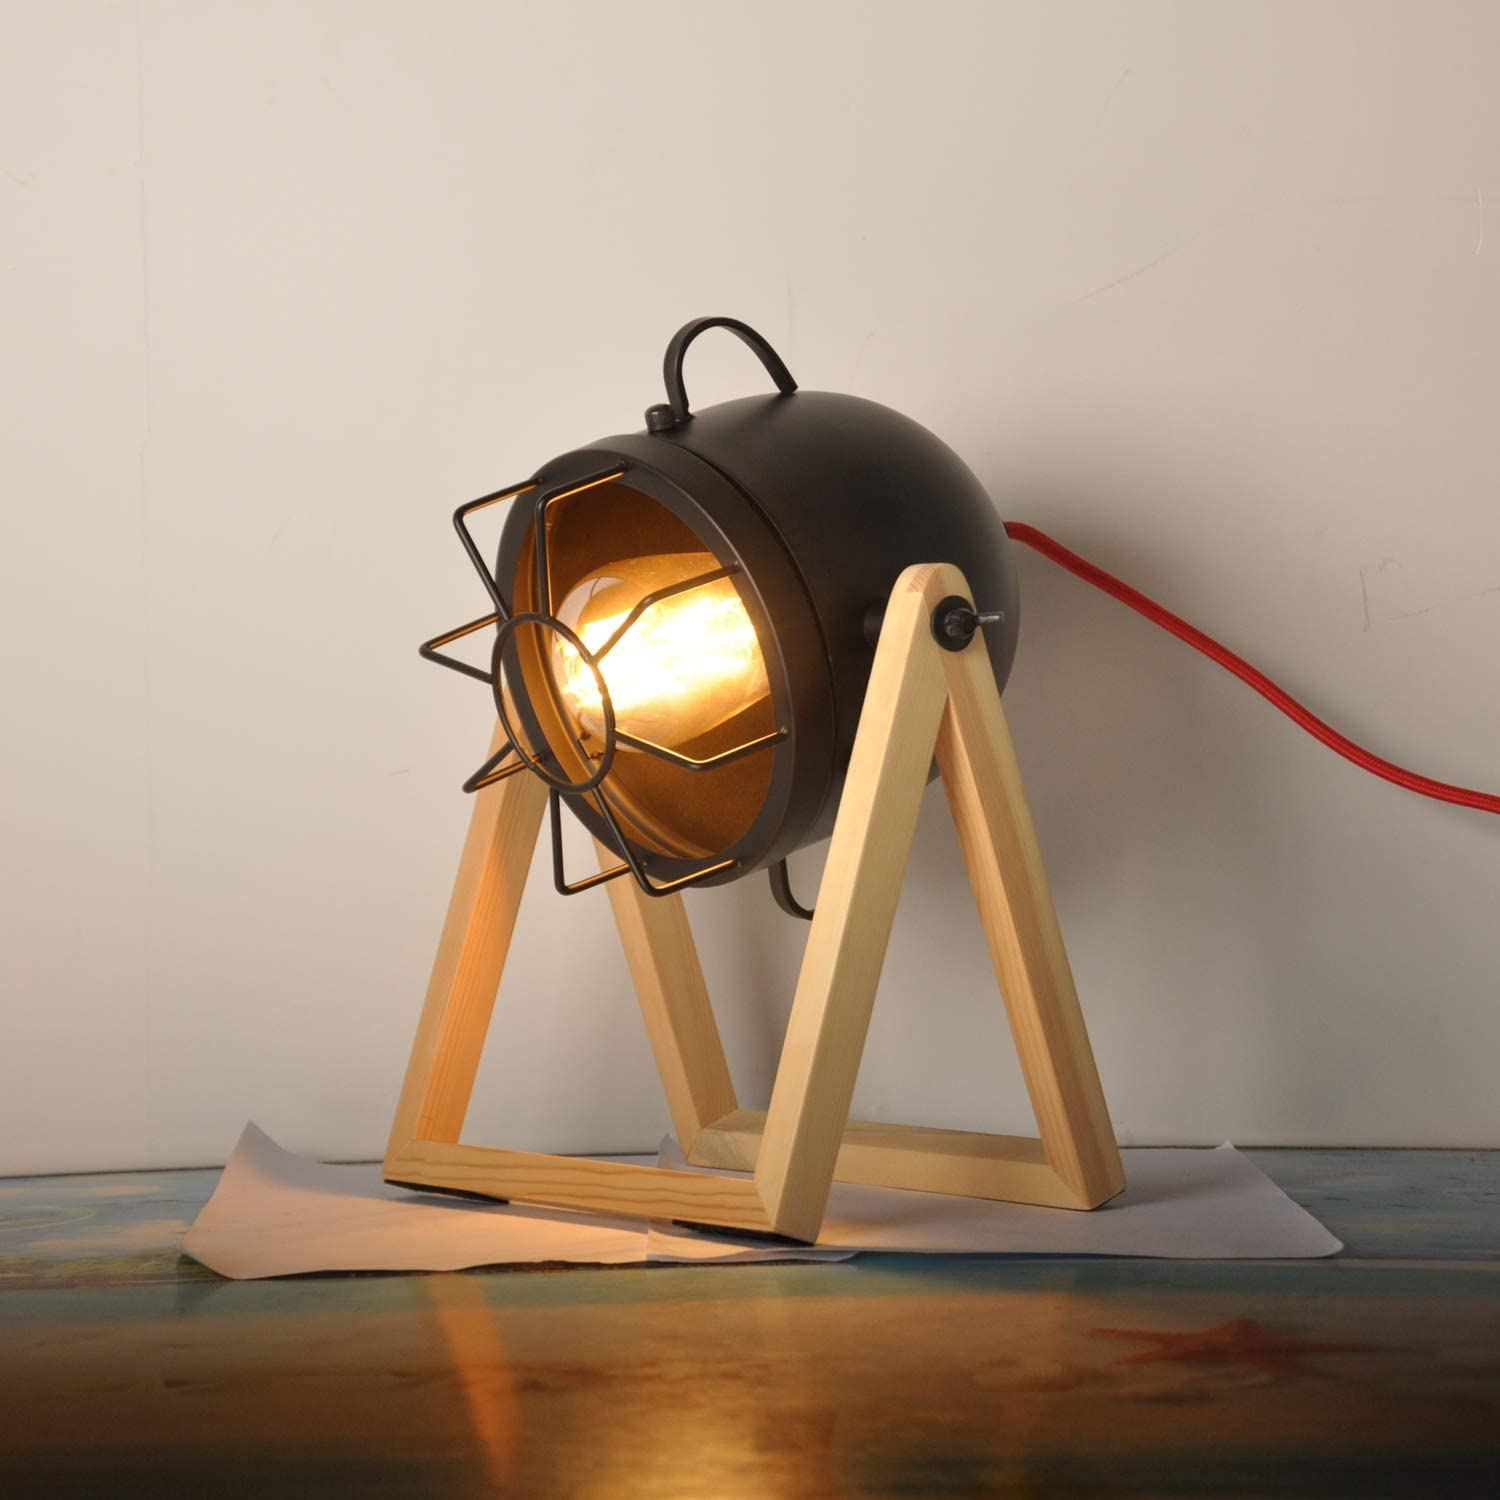 Vintage Table Lamp Old Wood Retro Desk Ru Our shop Popular brand OFFers the best service Light Searchlight for